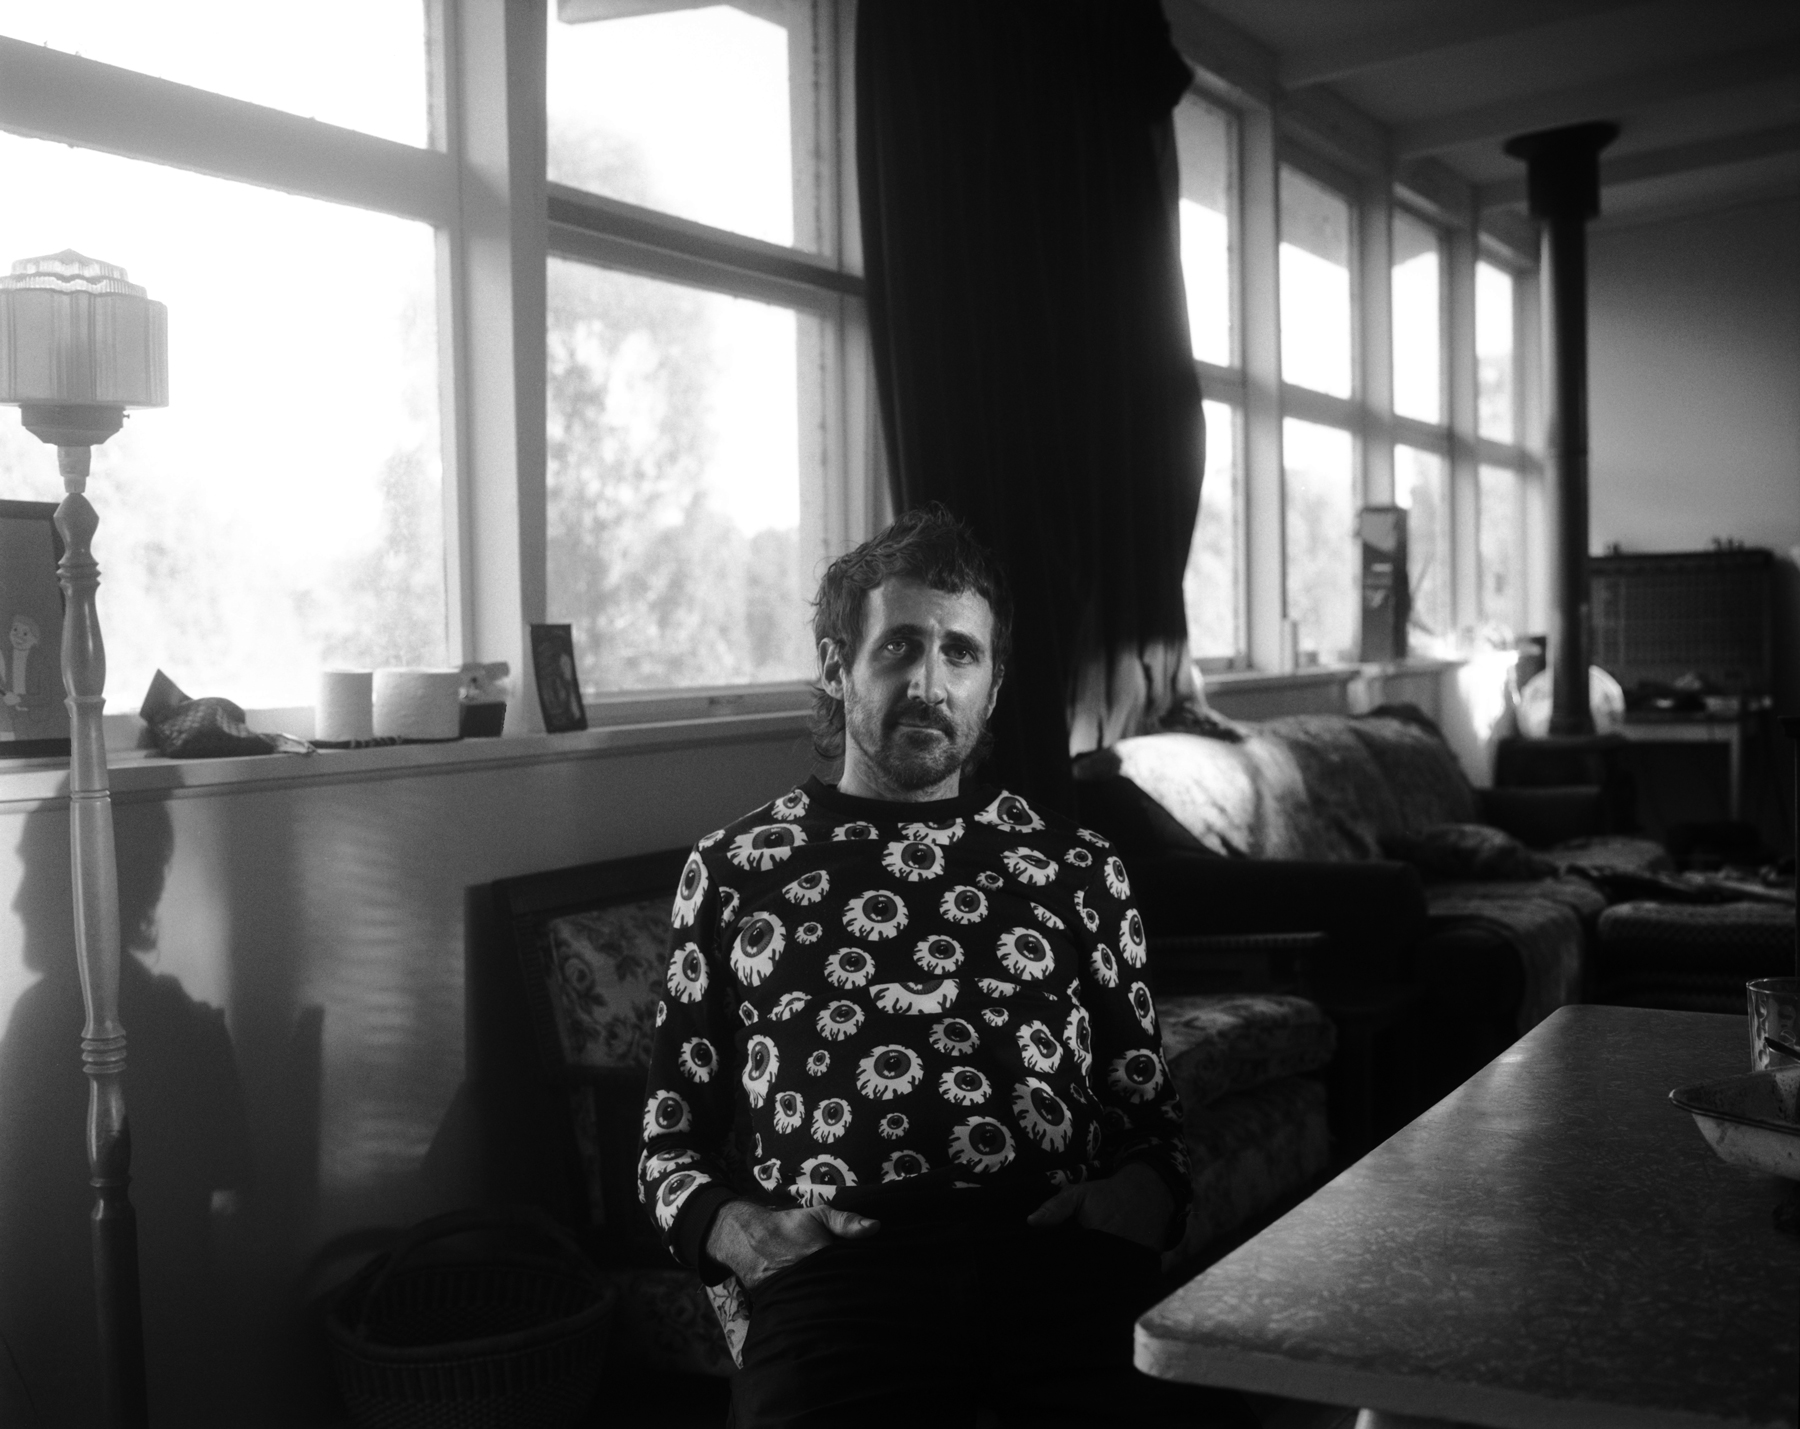 Tropical Fuck Storm's Gareth Liddiard pictured at home in regional Victoria for  Swampland  Issue 03. Photo by  Morgan Hickinbotham .